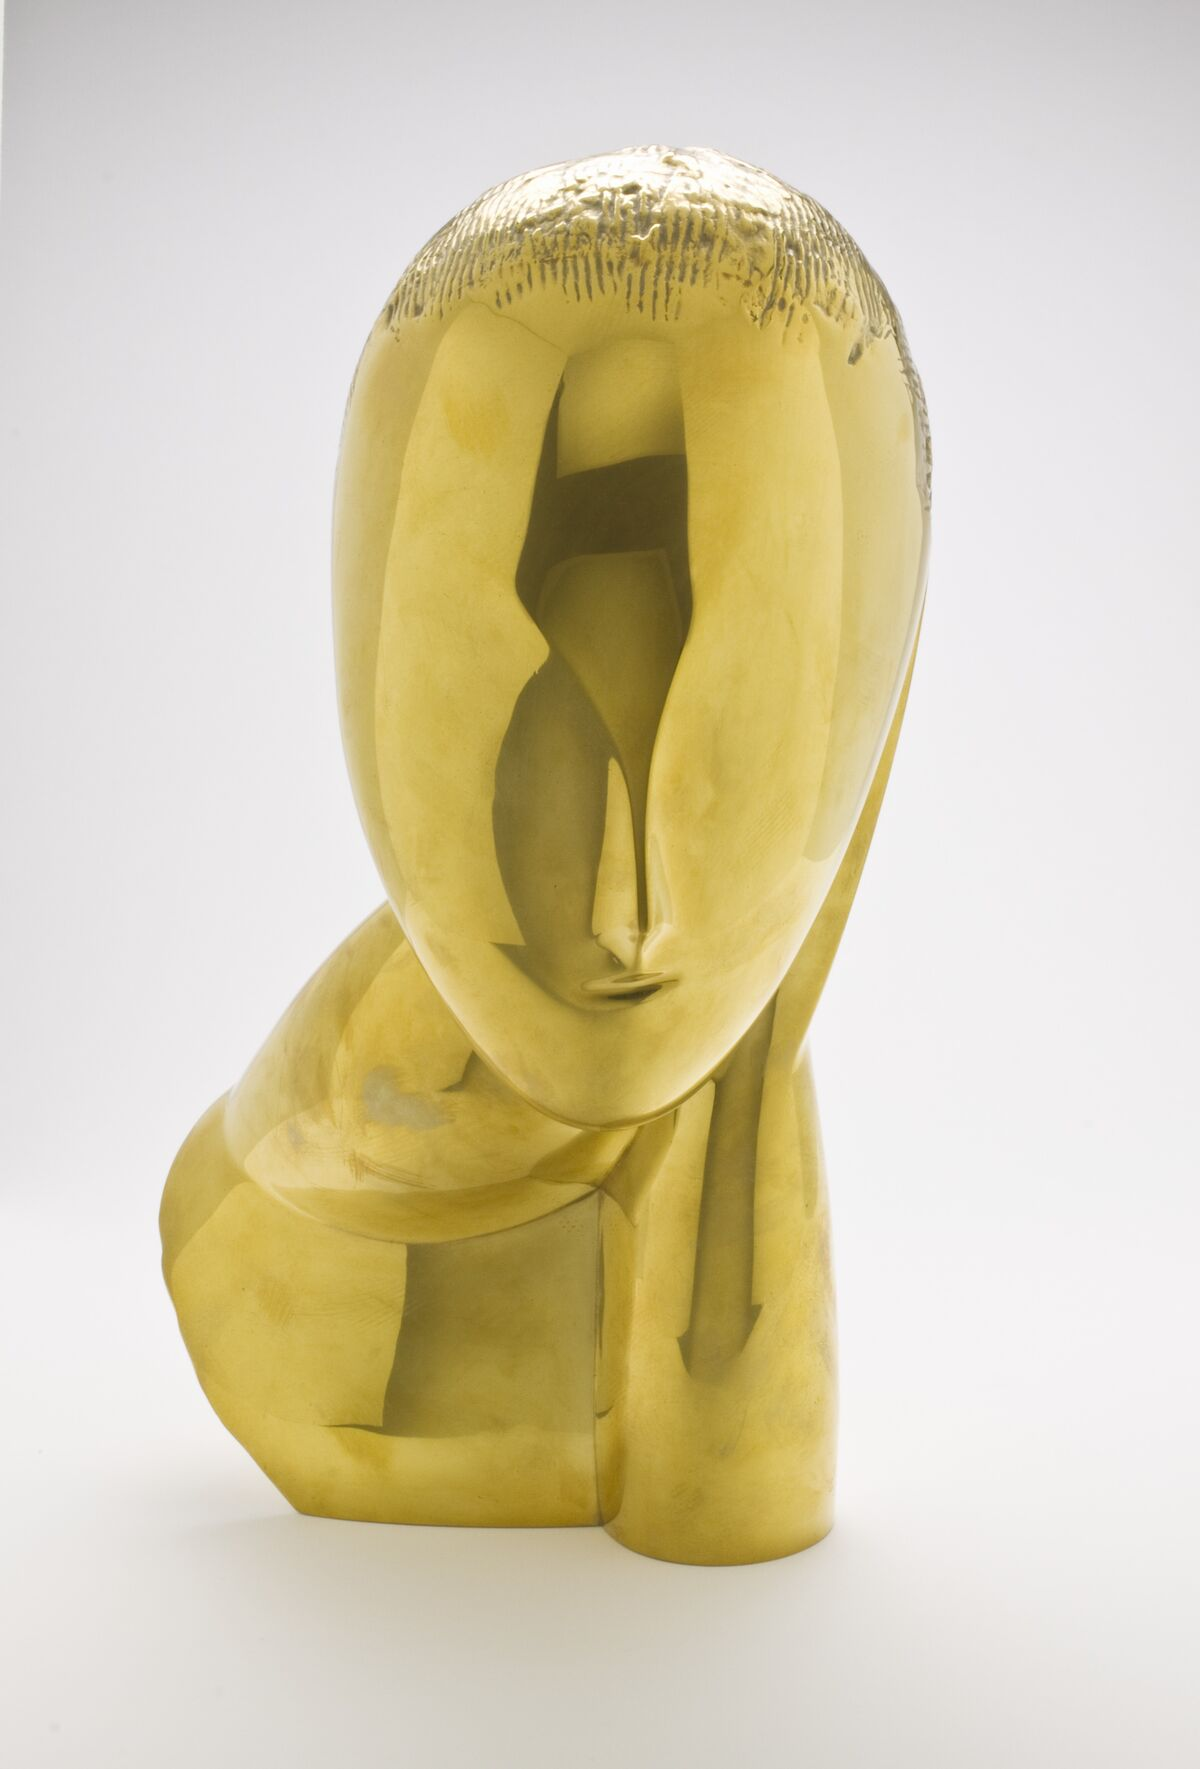 Constantin Brancusi, Muse (la Muse), 1969, posthumous cast from 1912 plaster original. Courtesy of Norton Simon Art Foundation.